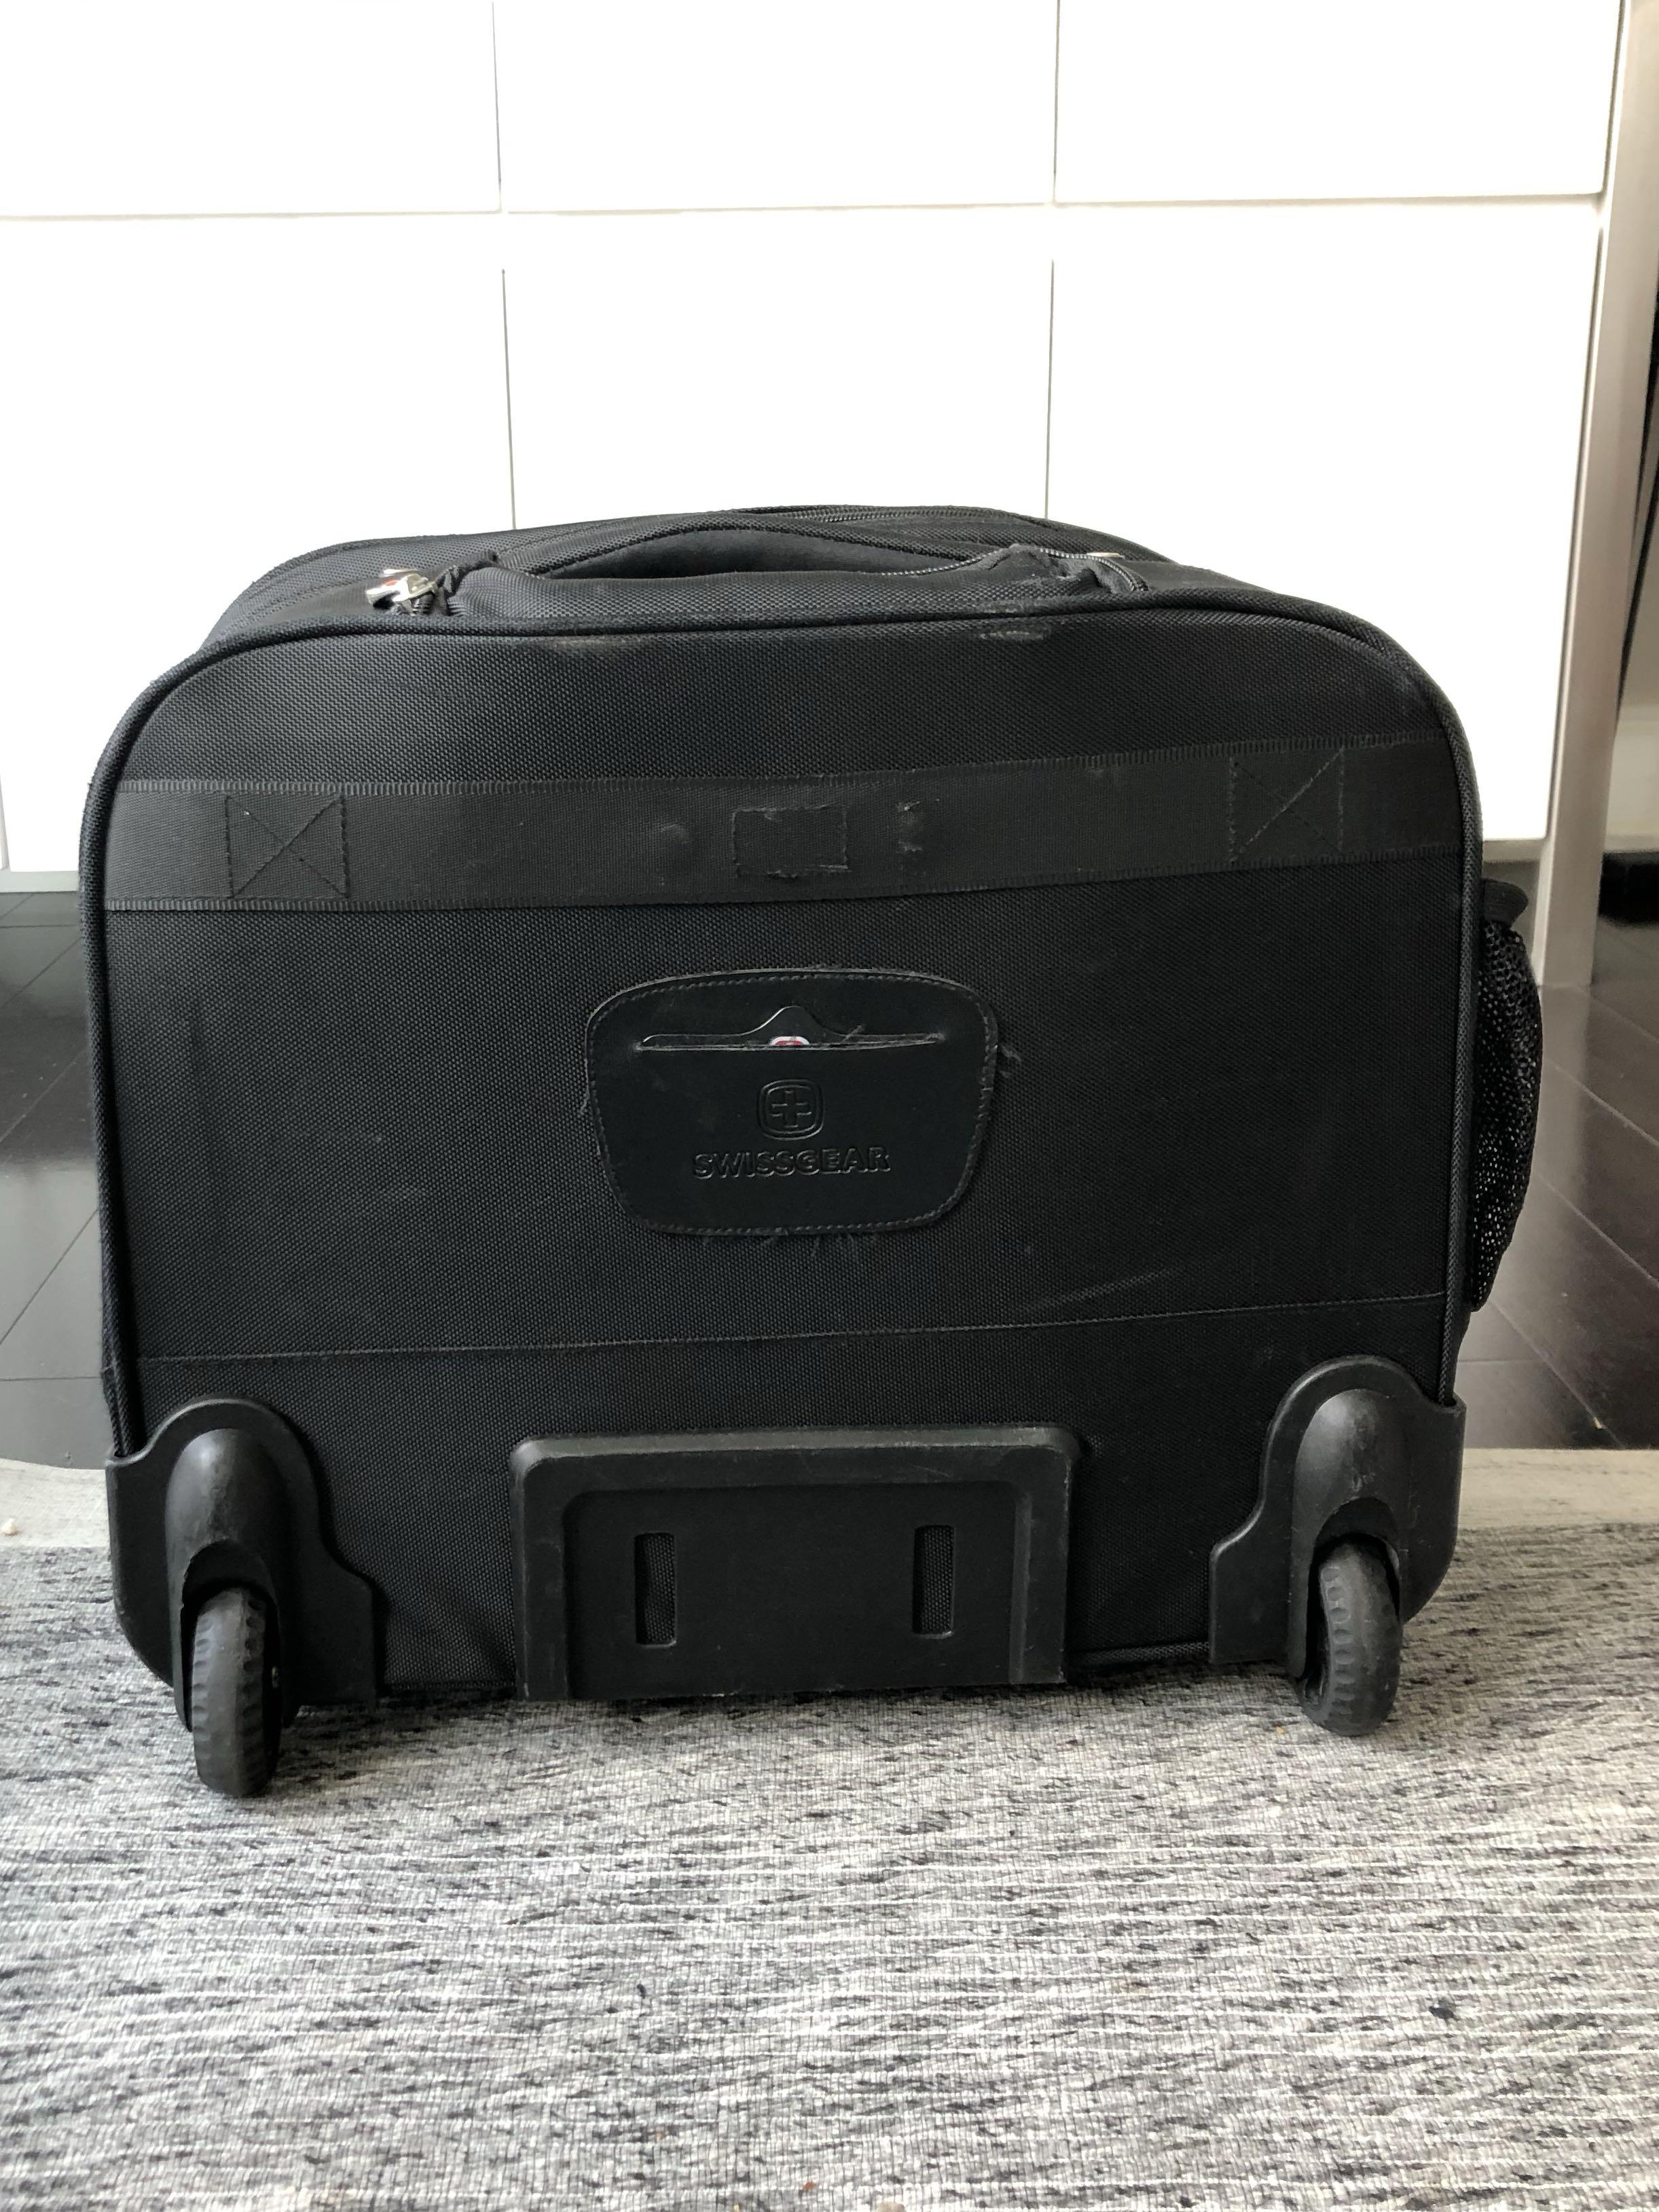 Swiss Army Carry On Luggage